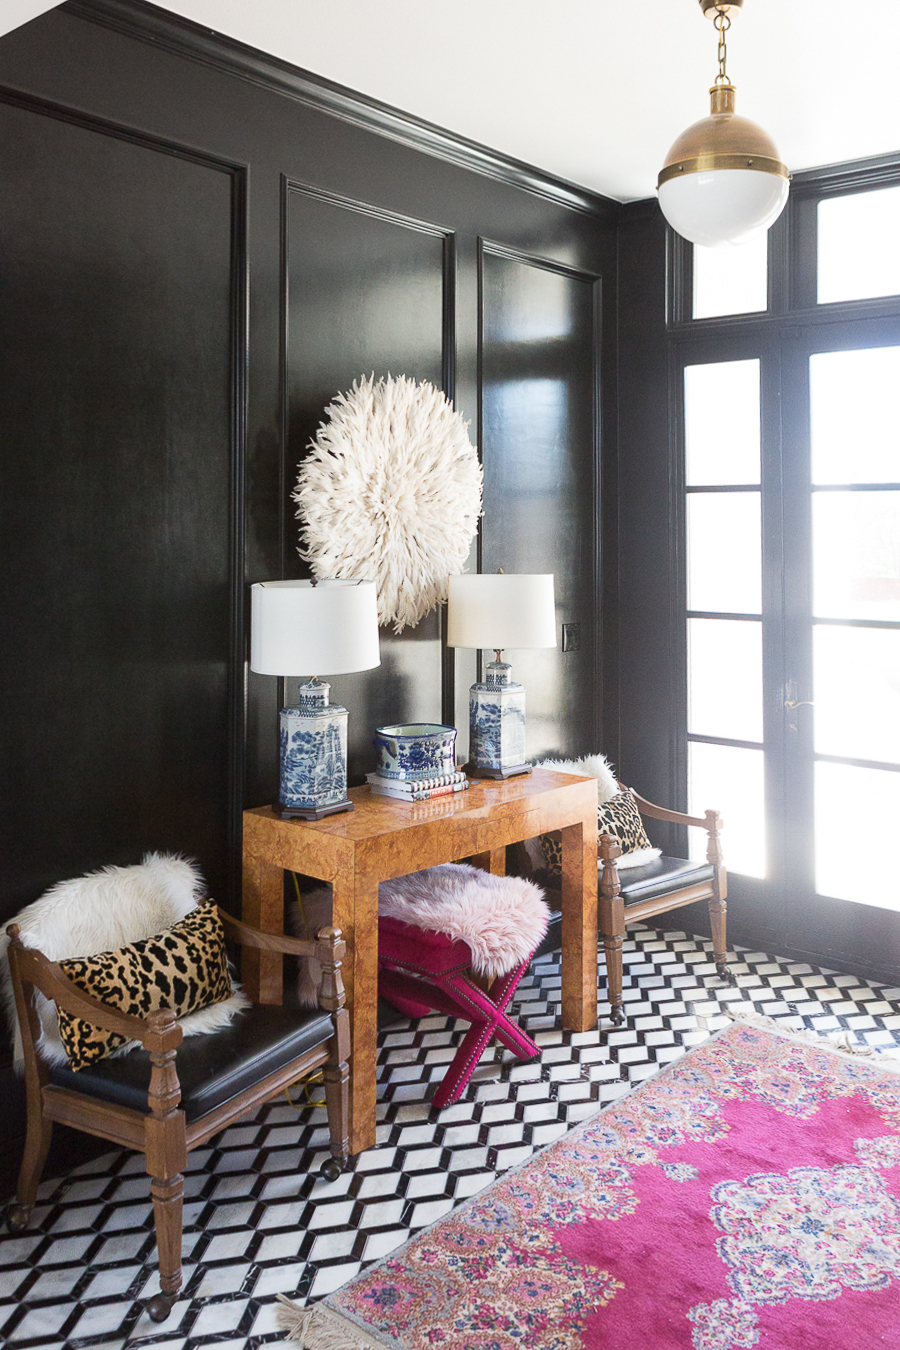 ALUMINUM CLAD Affordable alternatives to steel windows and doors black and white patterned marble floors in a small entryway with a patterned pink vintage rug and a burl wood console with a juju hat hanging above it and a white vase with pink faux stems and paneled wood walls painted high gloss black